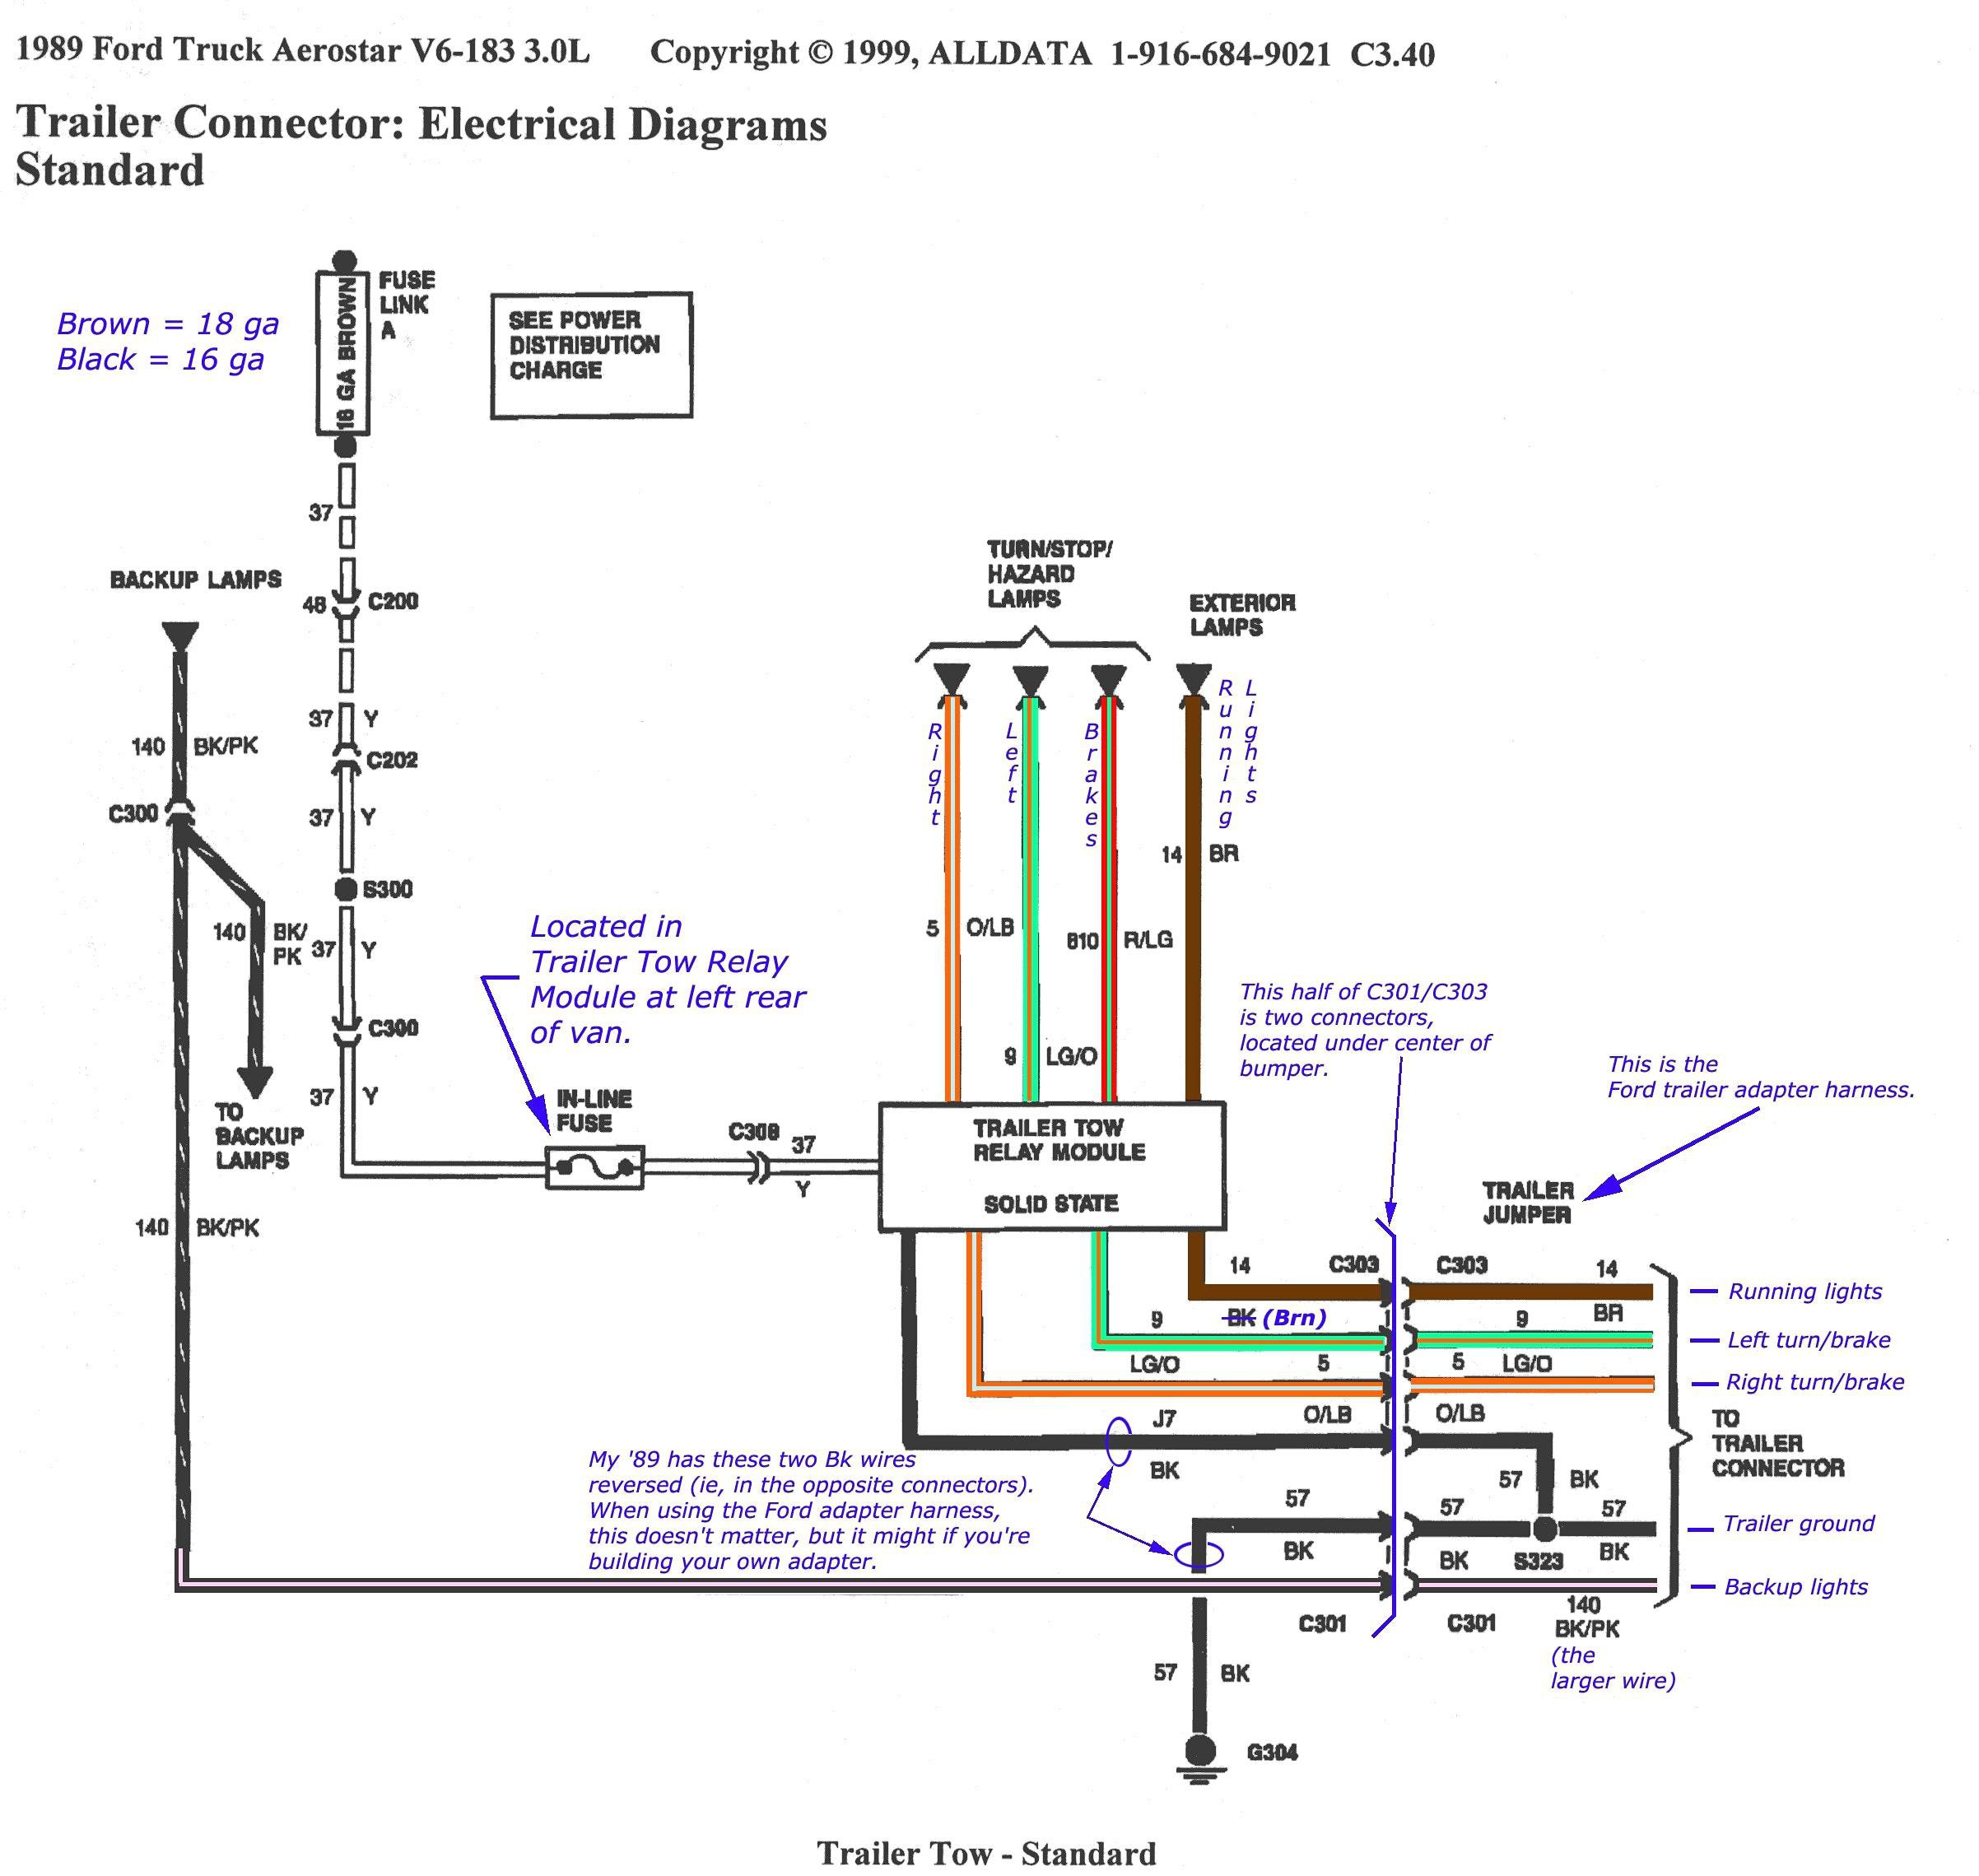 ford f350 trailer wiring diagram Download-ford radio wiring harness diagram new f350 trailer westmagazine of rh natebird me 1999 ford f350 transmission wiring harness 1999 ford f350 wiring harness 18-n